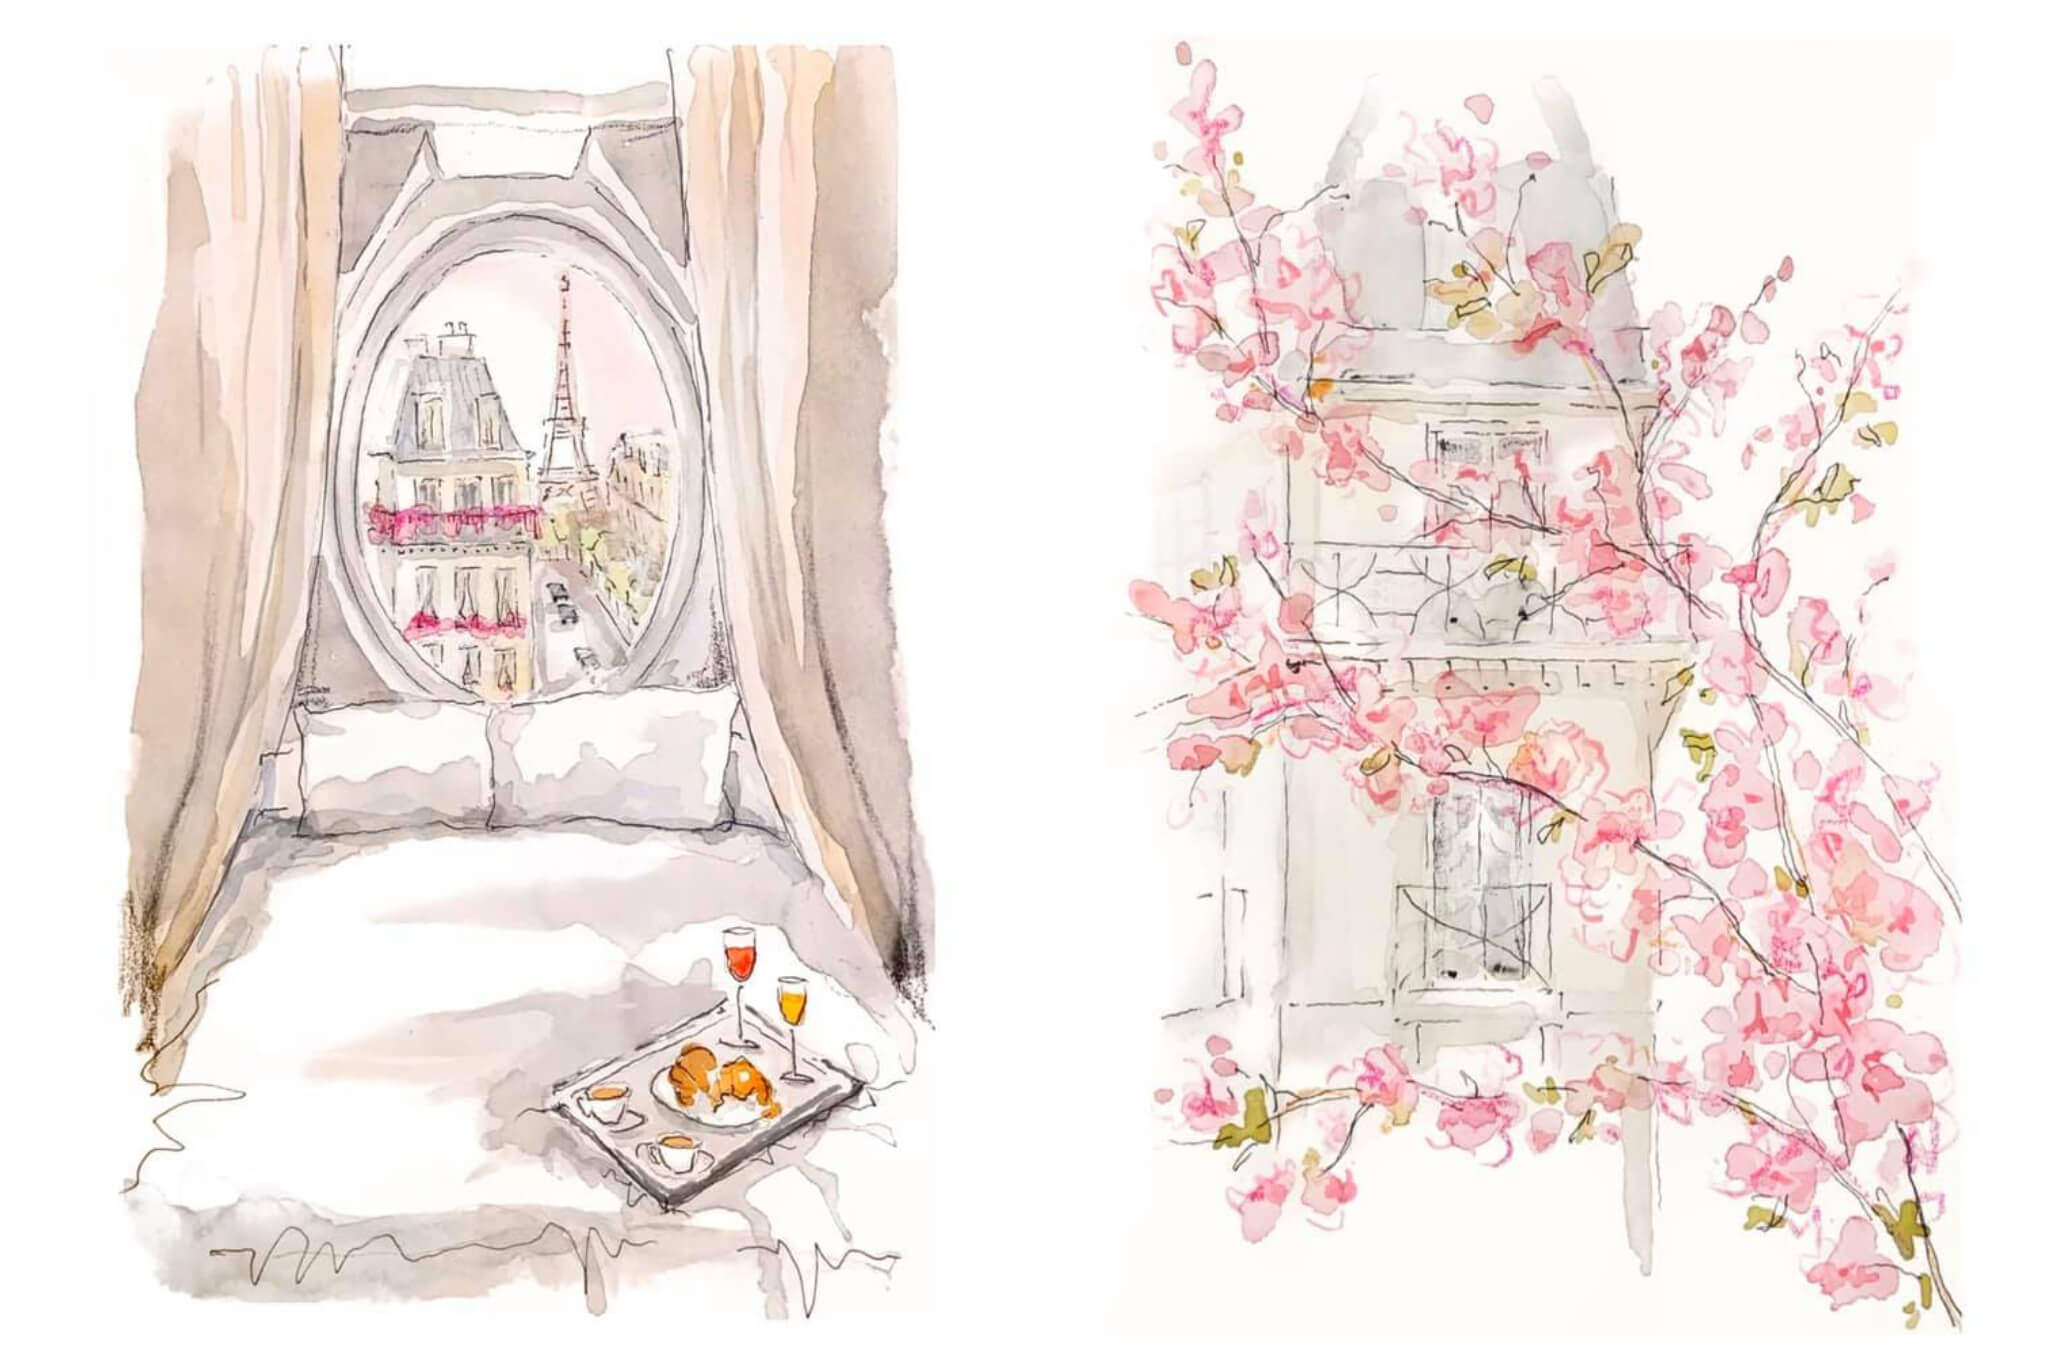 Left: A watercolor of a room in Paris-- in the forefront of the painting is a bed and a tray of croissants, coffee and drinks. In the background is a window with a view of the Eiffel Tower, Right: A watercolor of a Parisian building, in front of it a blooming cherry blossom tree.